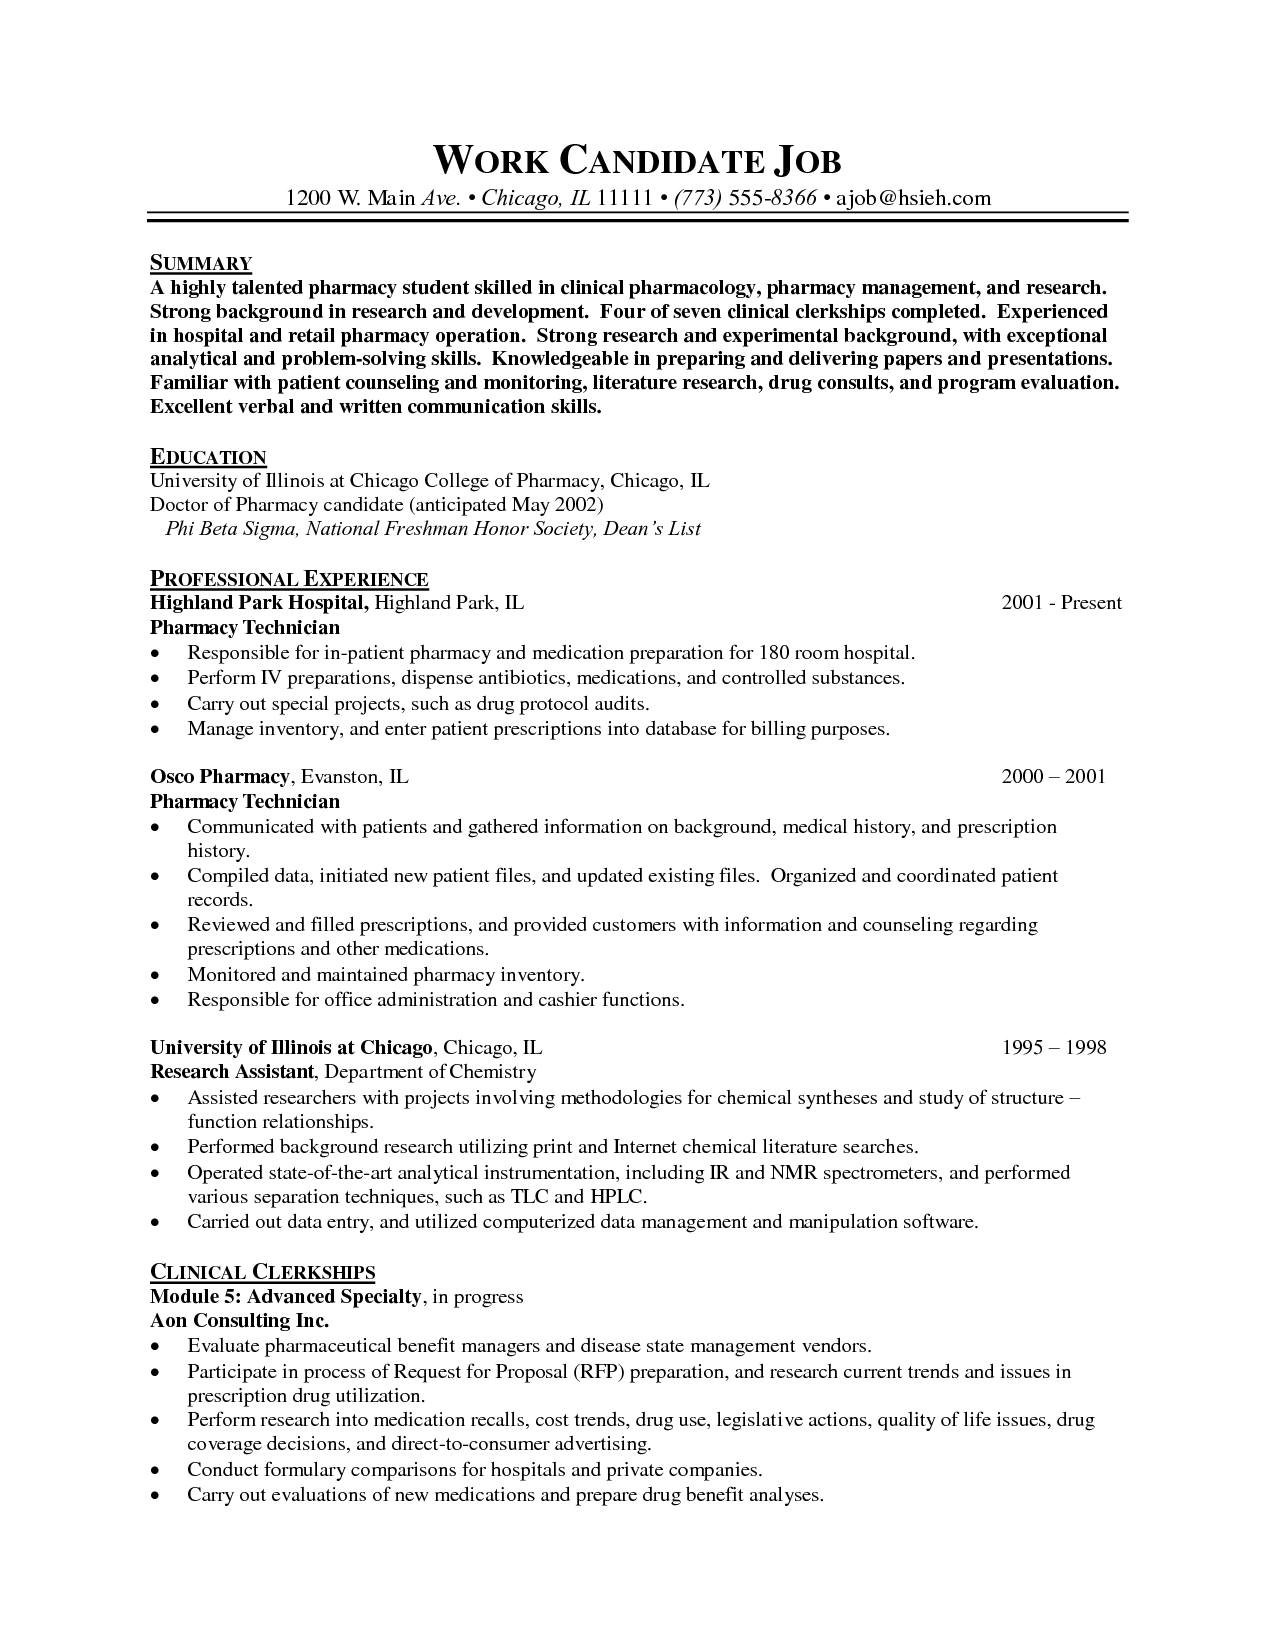 pharmacist resume templates